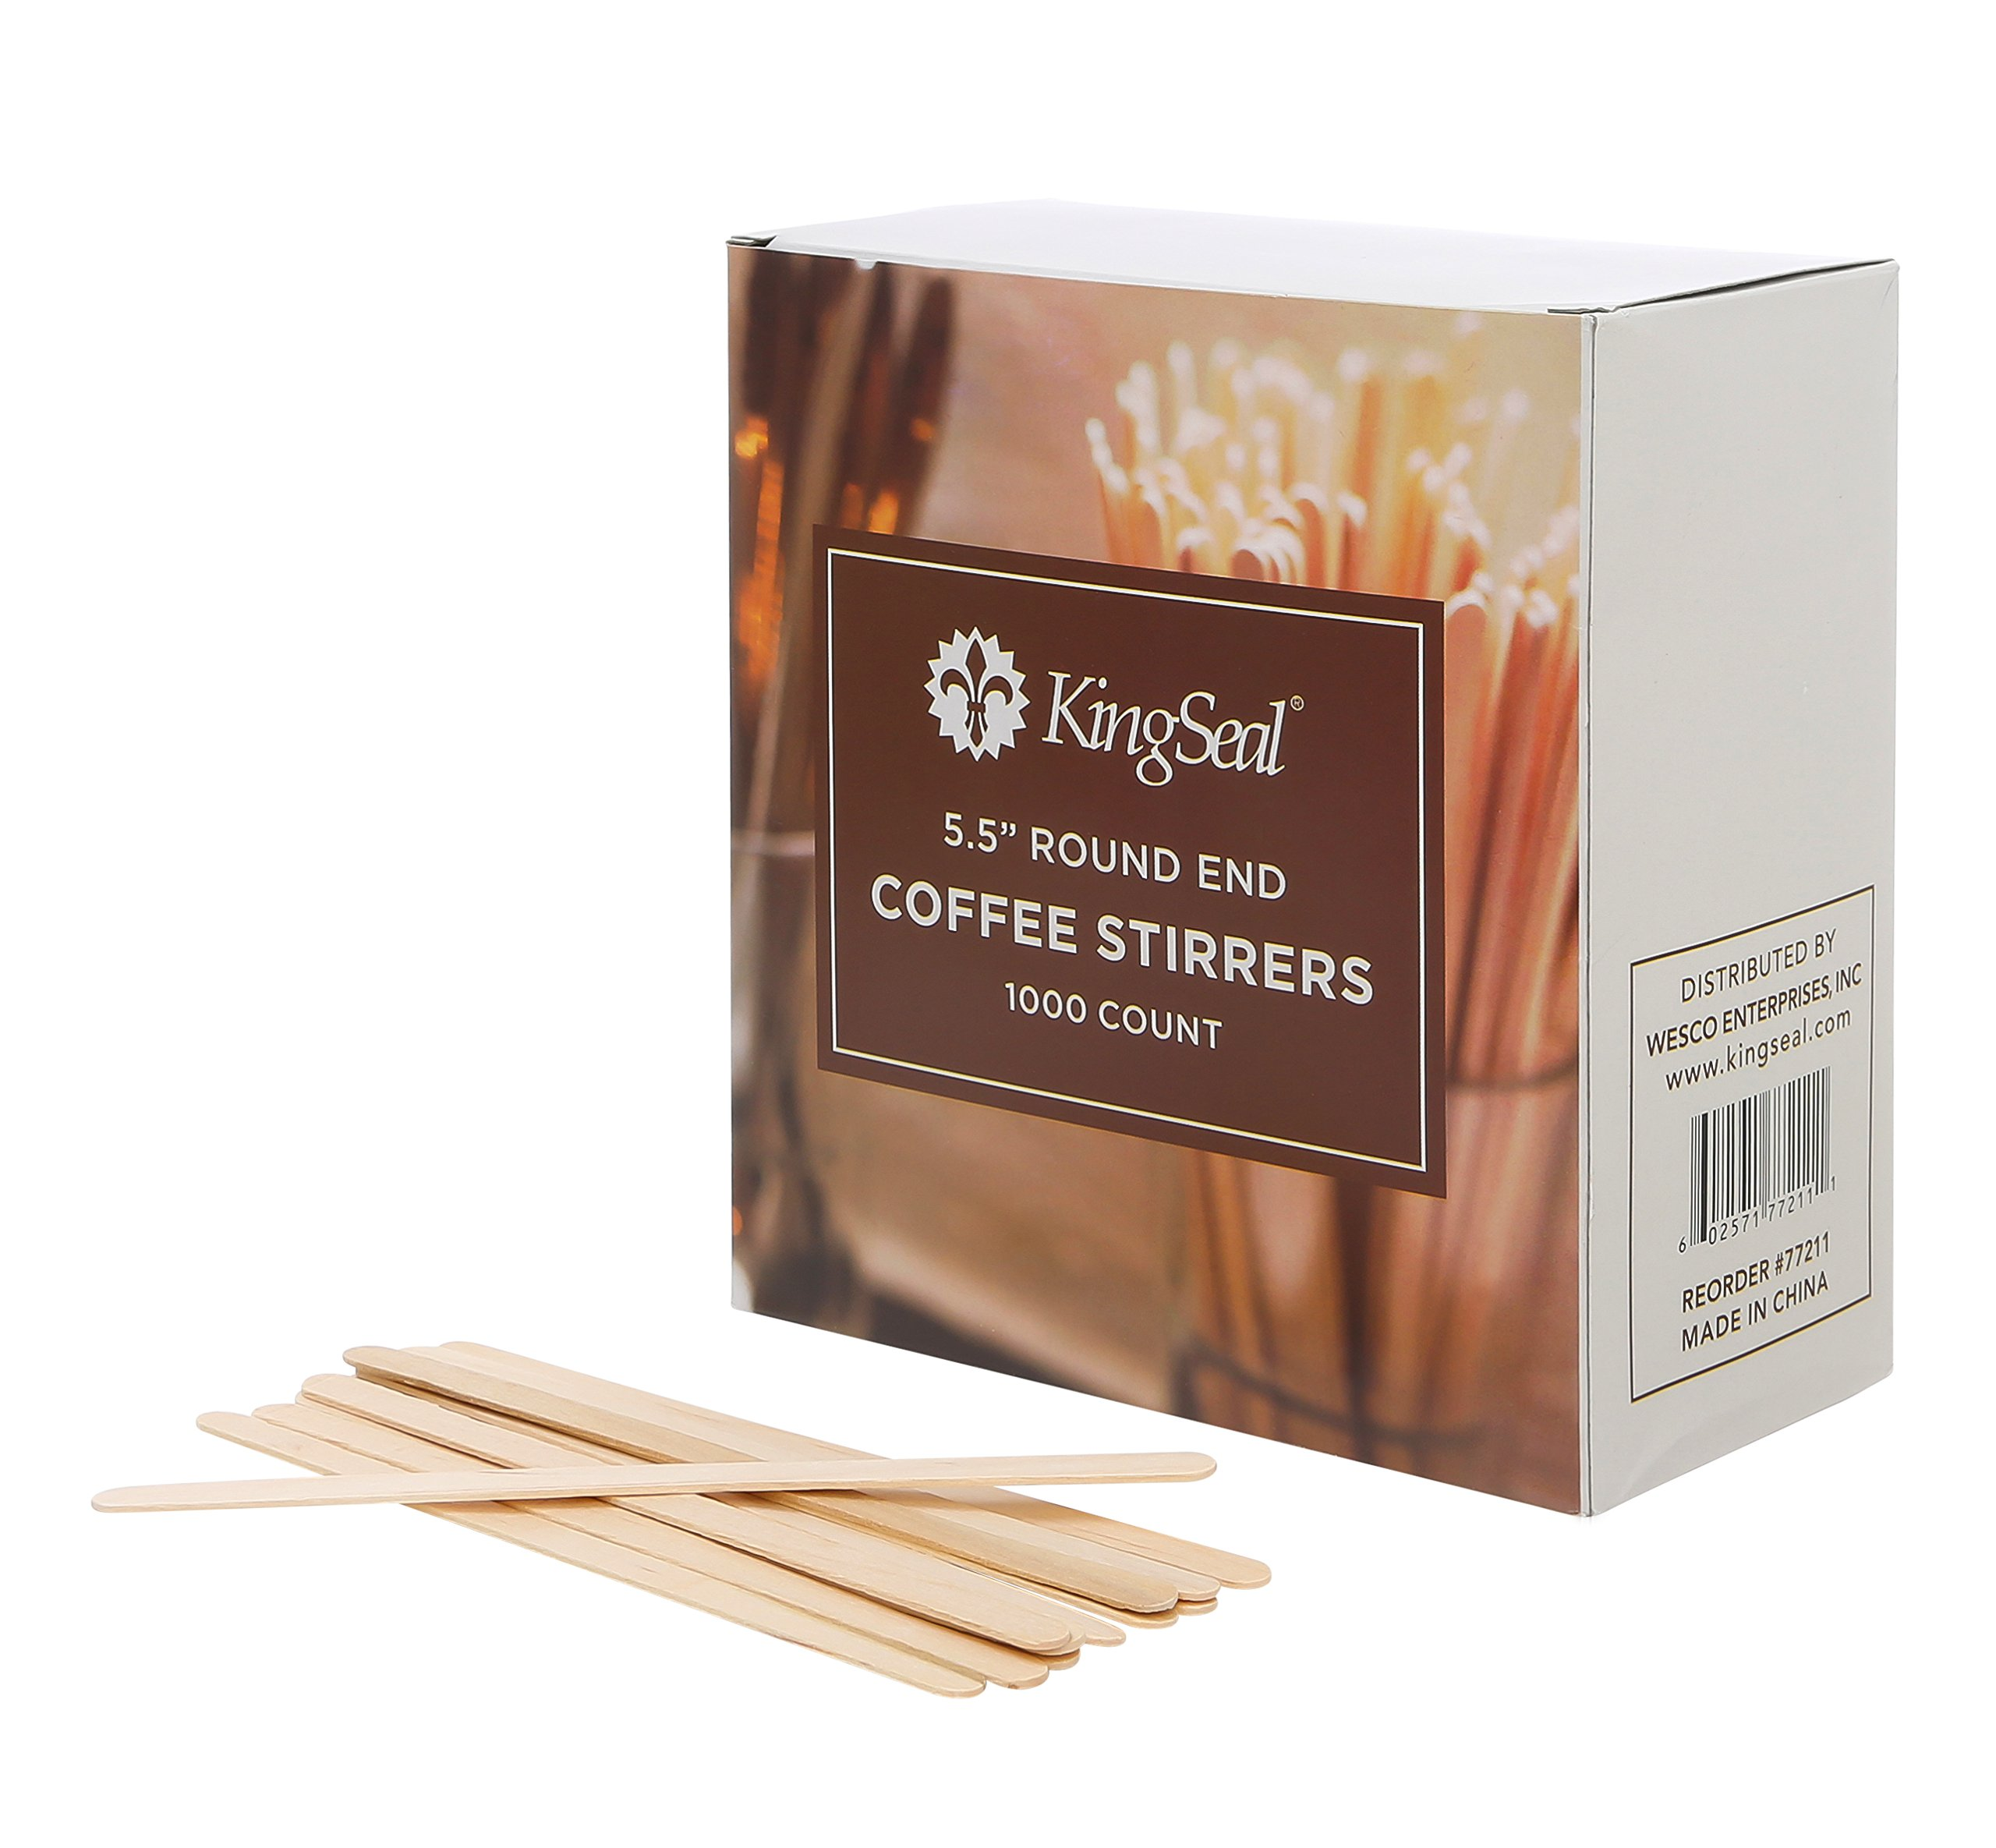 KingSeal Natural Birch Wood Coffee Beverage Stirrers - 5.5 Inches, Round End, 10 Packs of 1000 each per Case by KingSeal (Image #1)